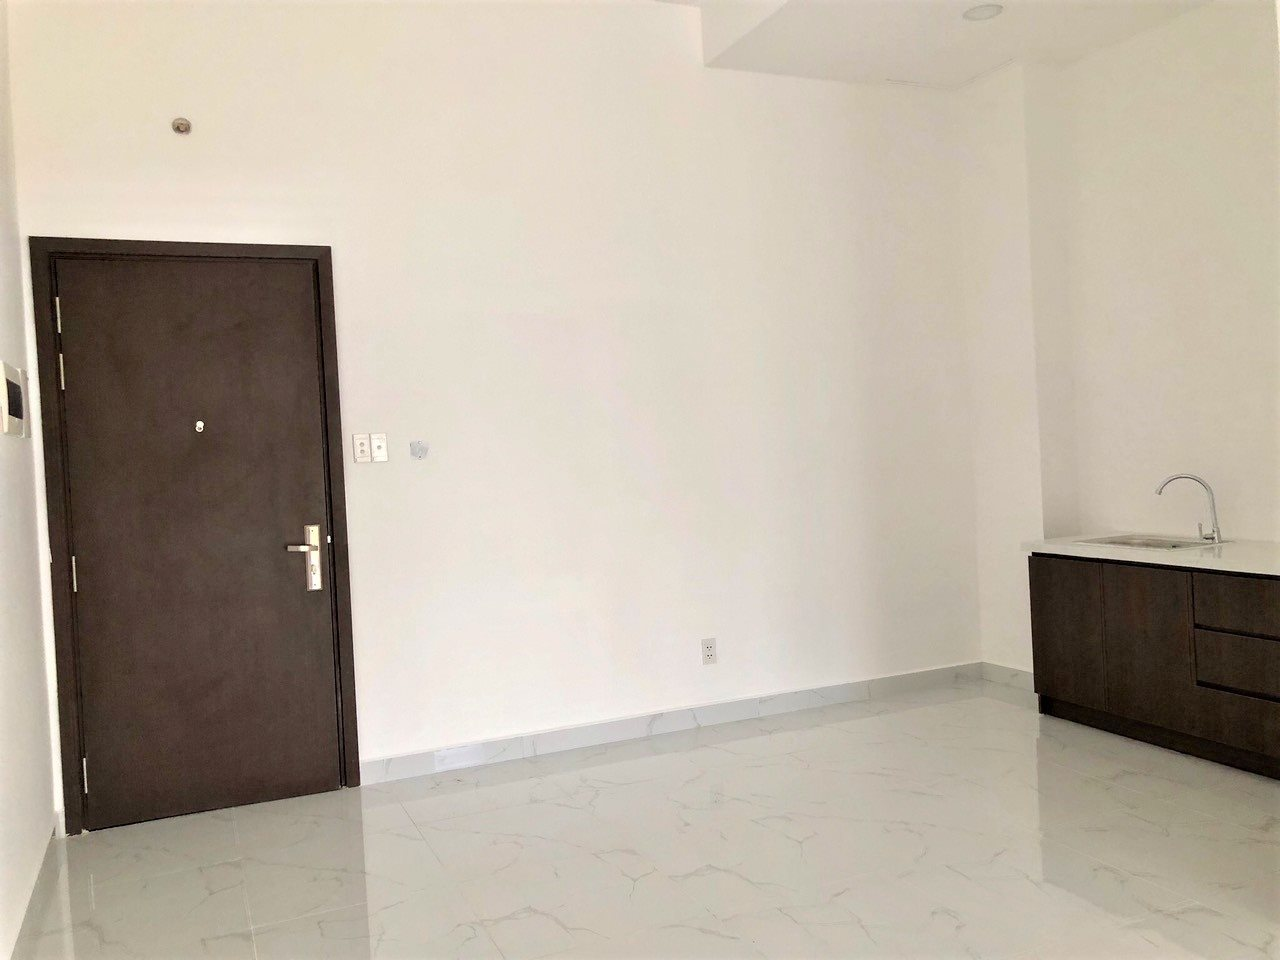 D227378 - APARTMENT FOR RENT - THE SUN AVENUE - 1 bedroom